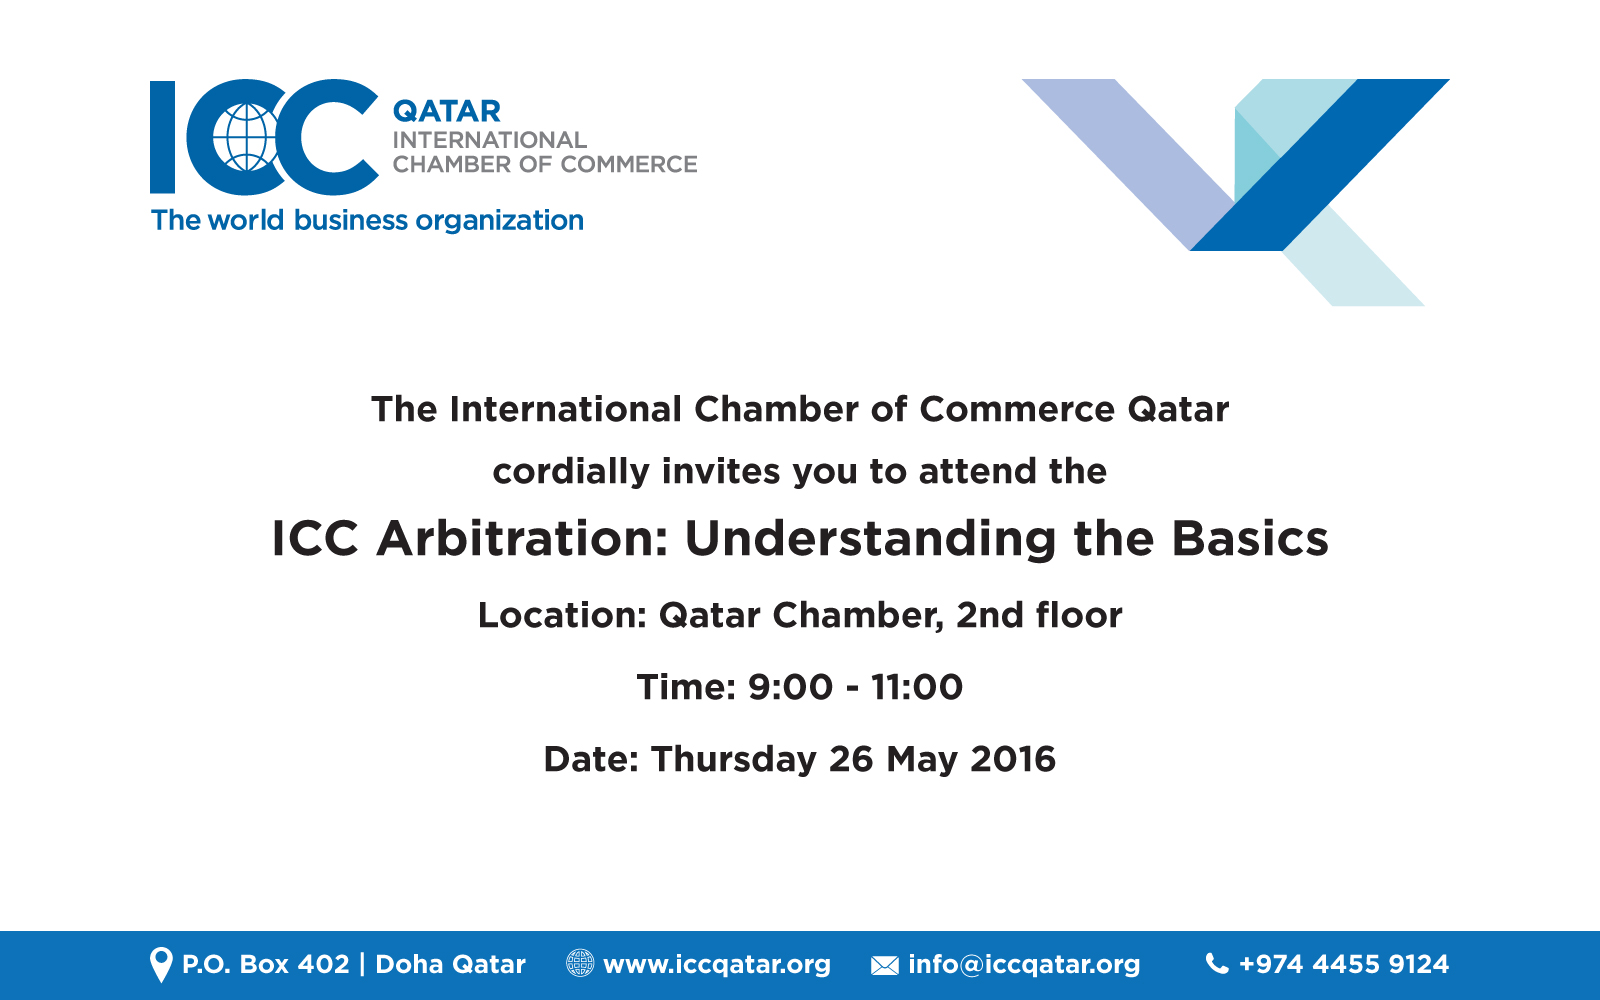 ICC Arbitration: Understanding the Basics